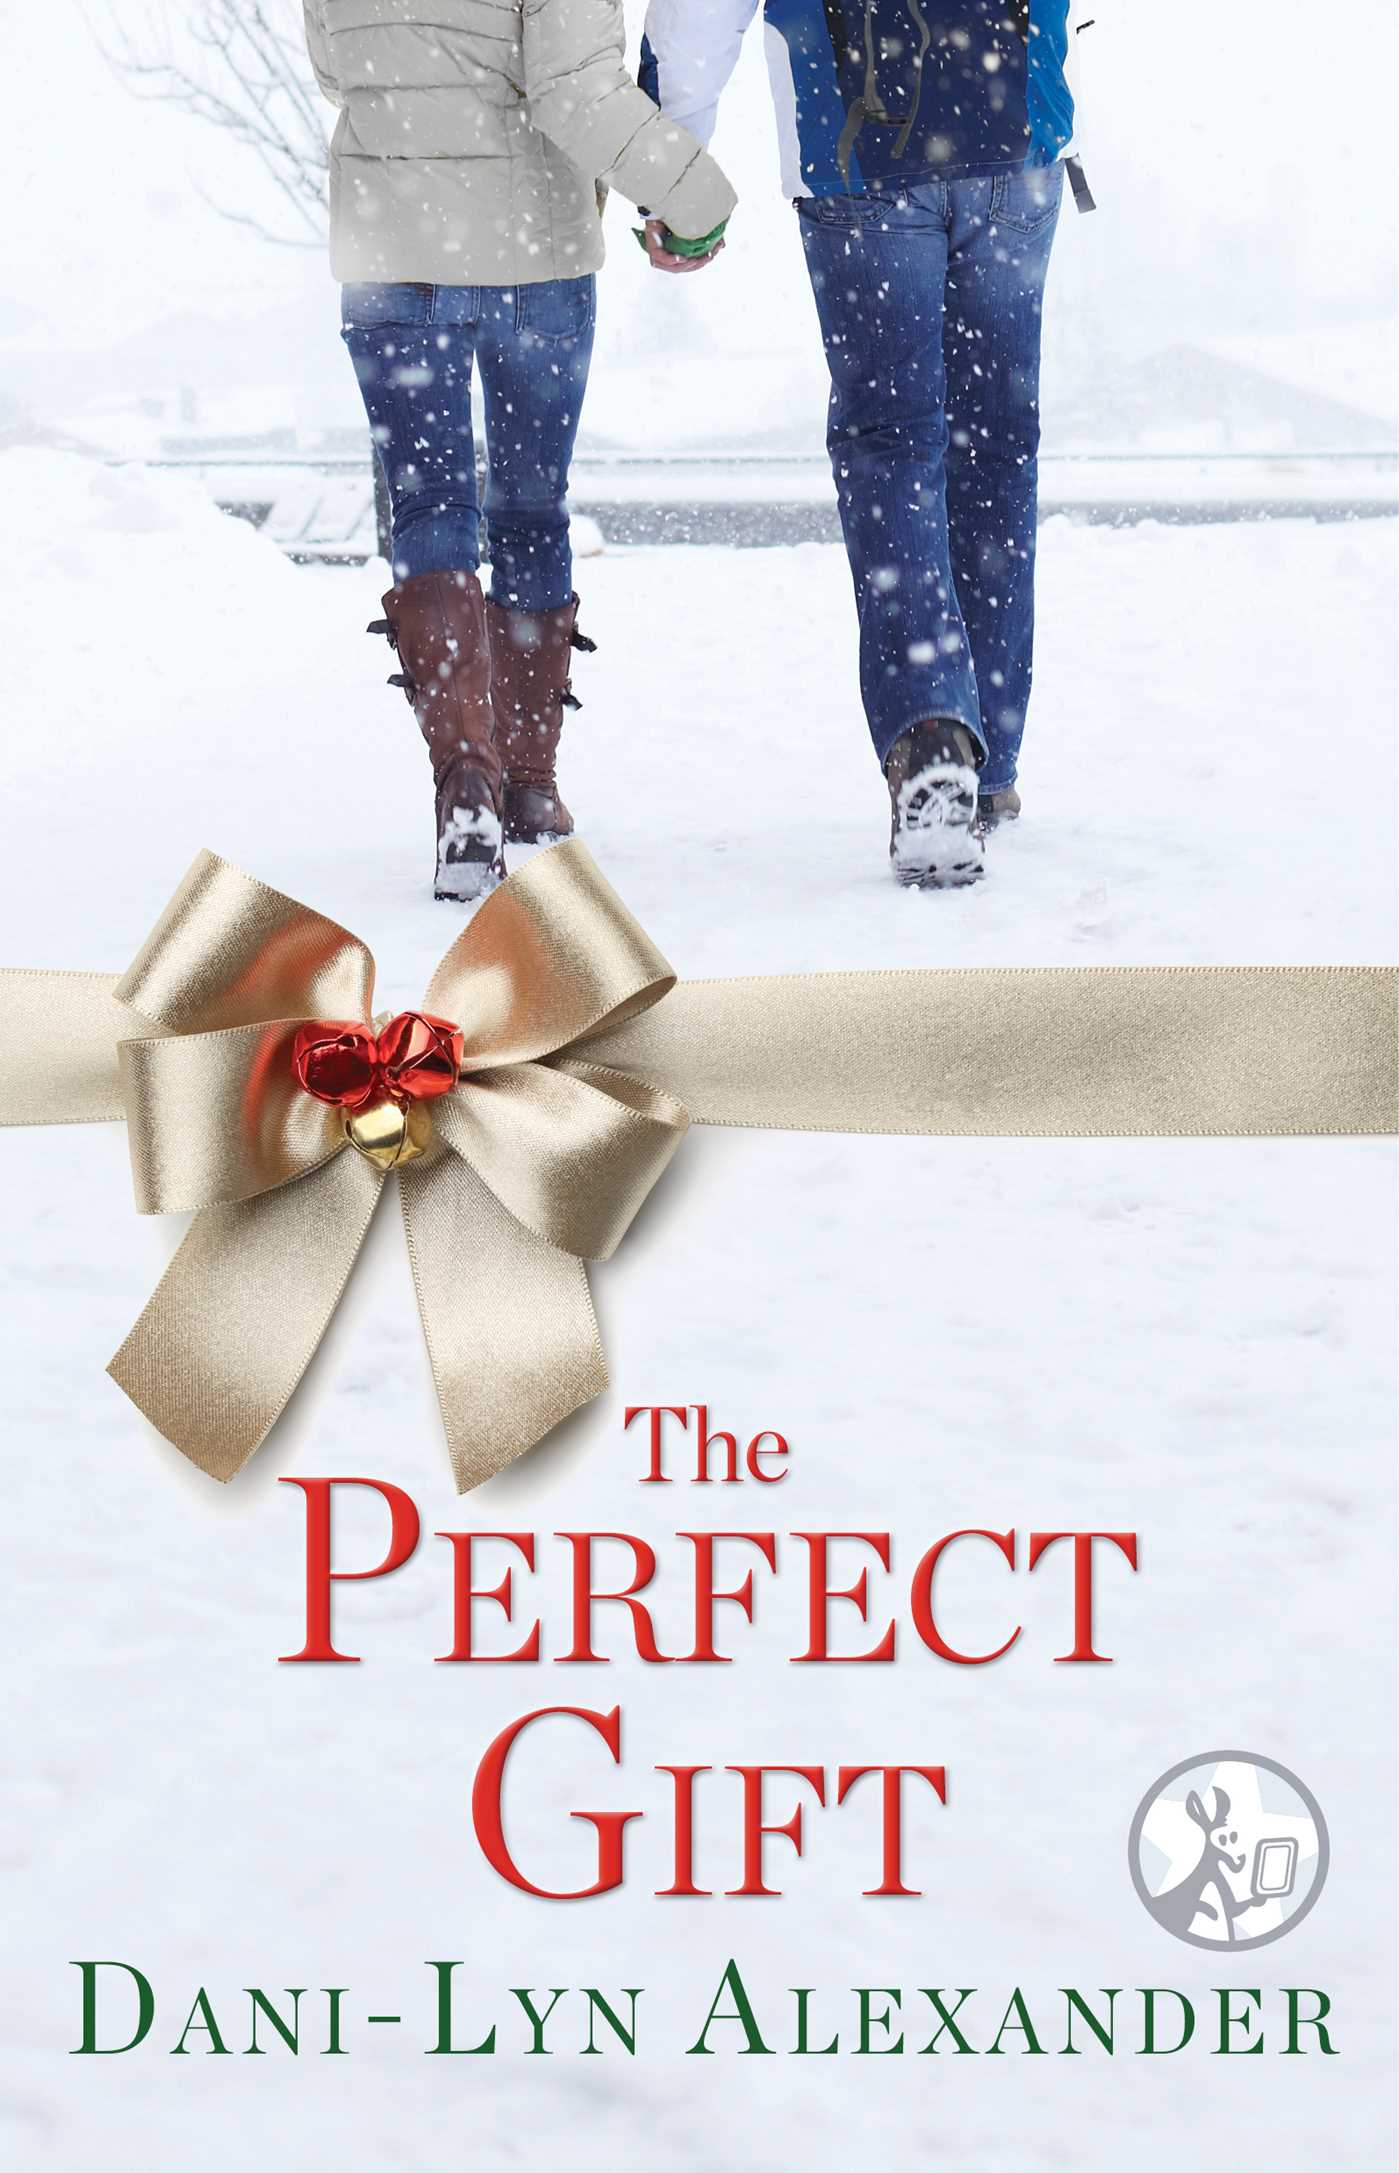 The perfect gift 9781476773339 hr